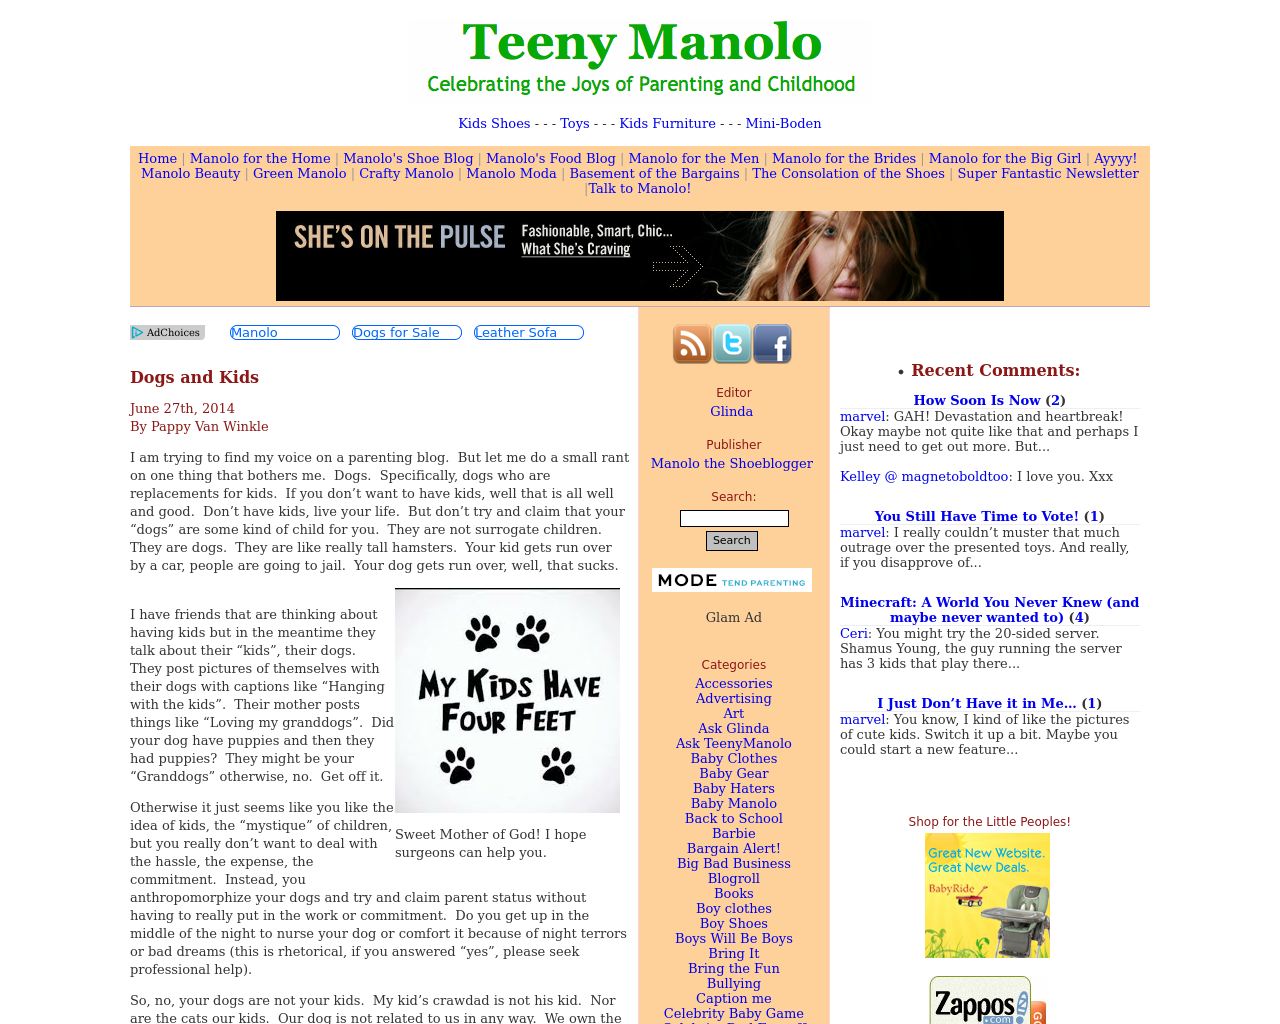 Teeny-Manolo-Advertising-Reviews-Pricing